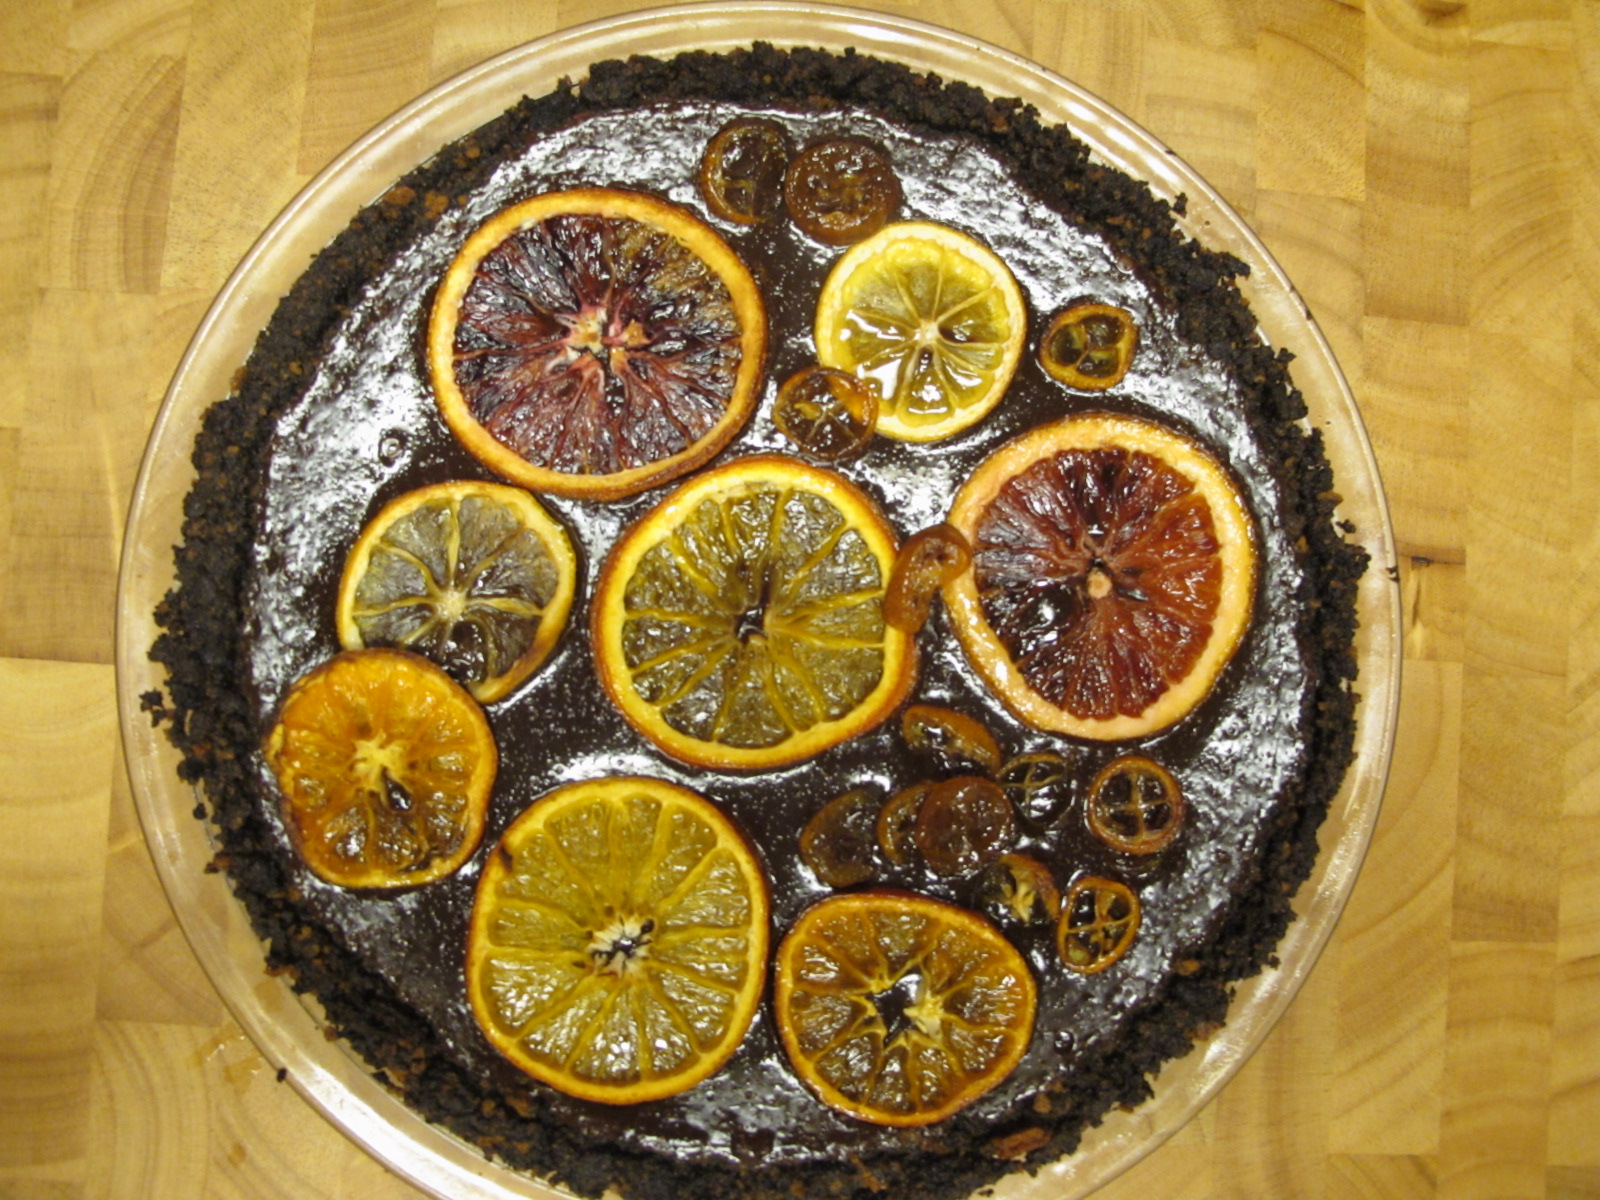 Chocolate Caramelized Orange Tart